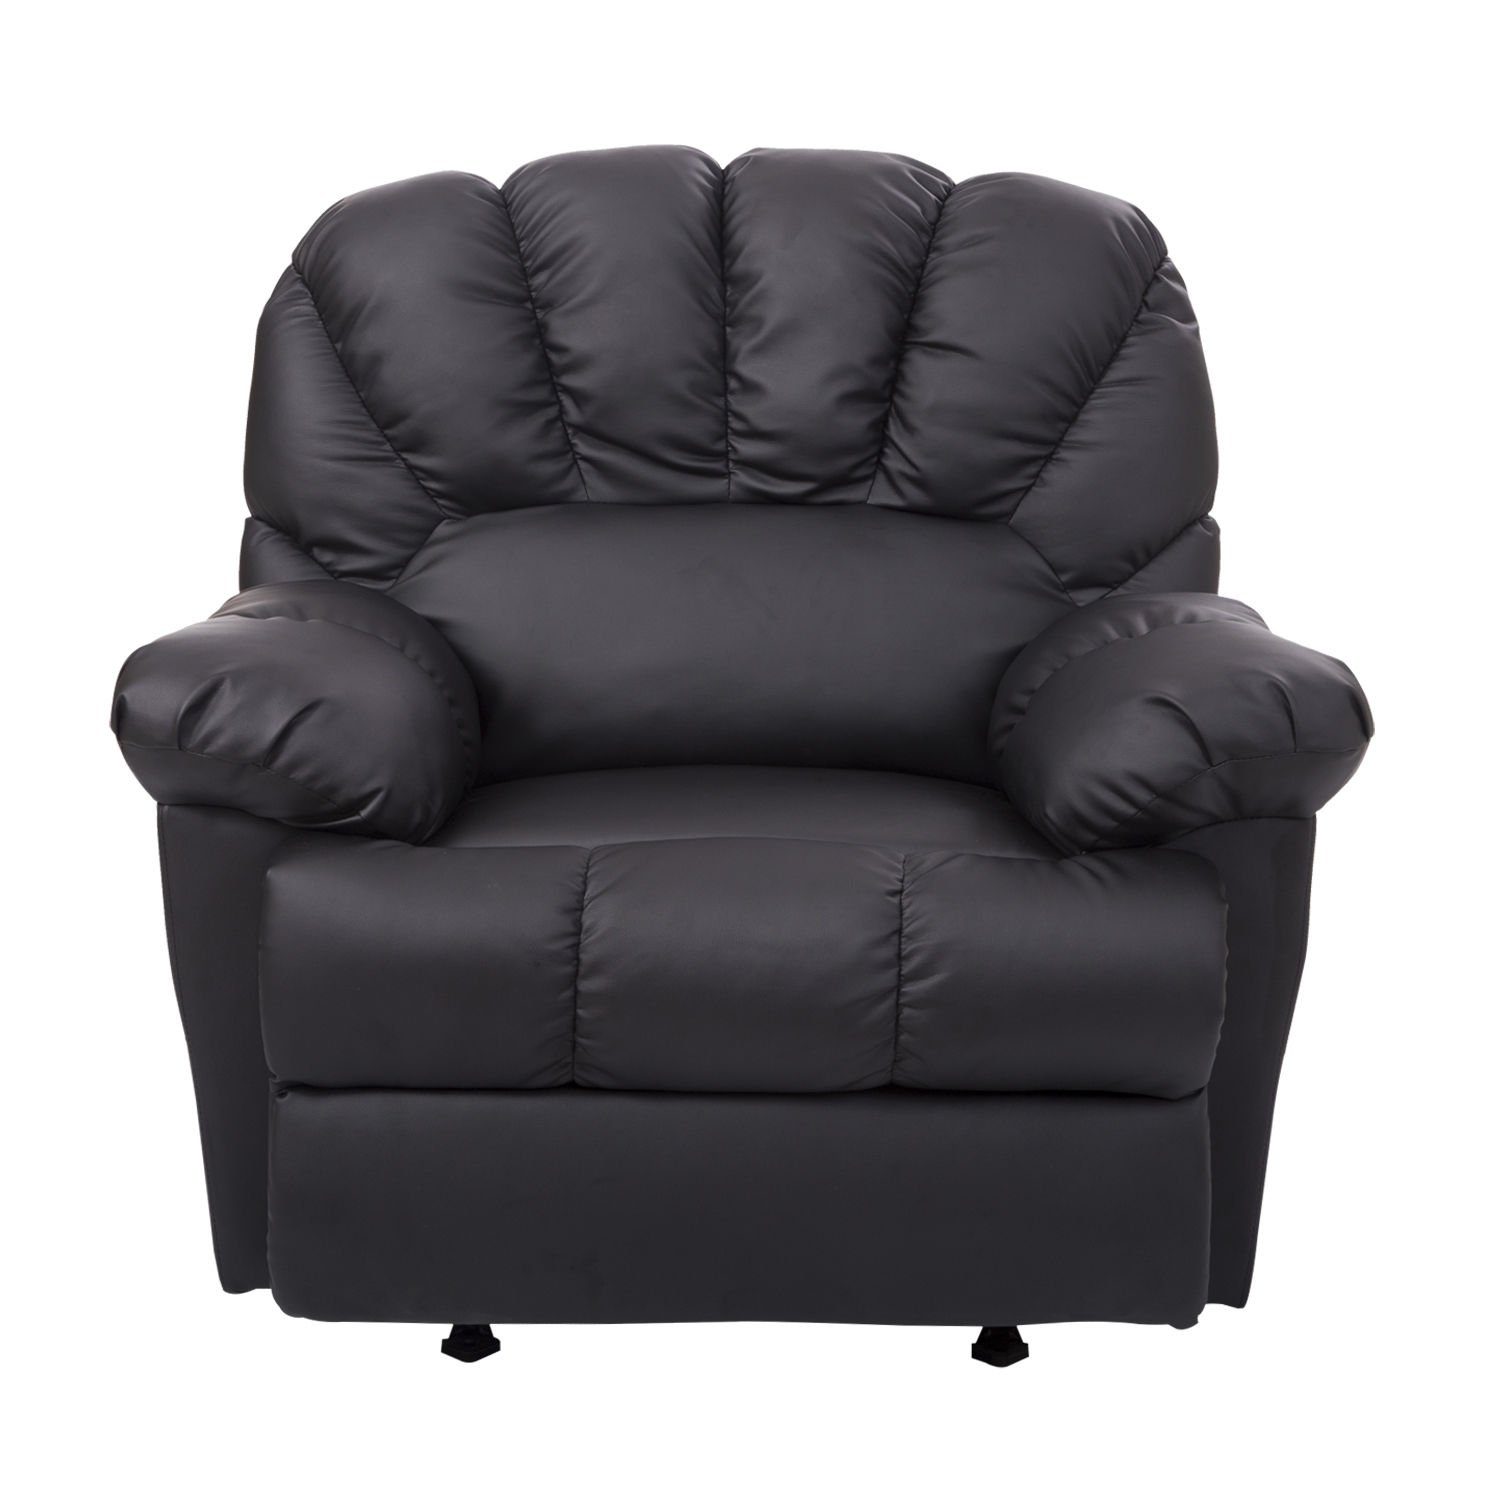 GHP Black PU Leather & PVC Backing Single Recliner Rocking Sofa